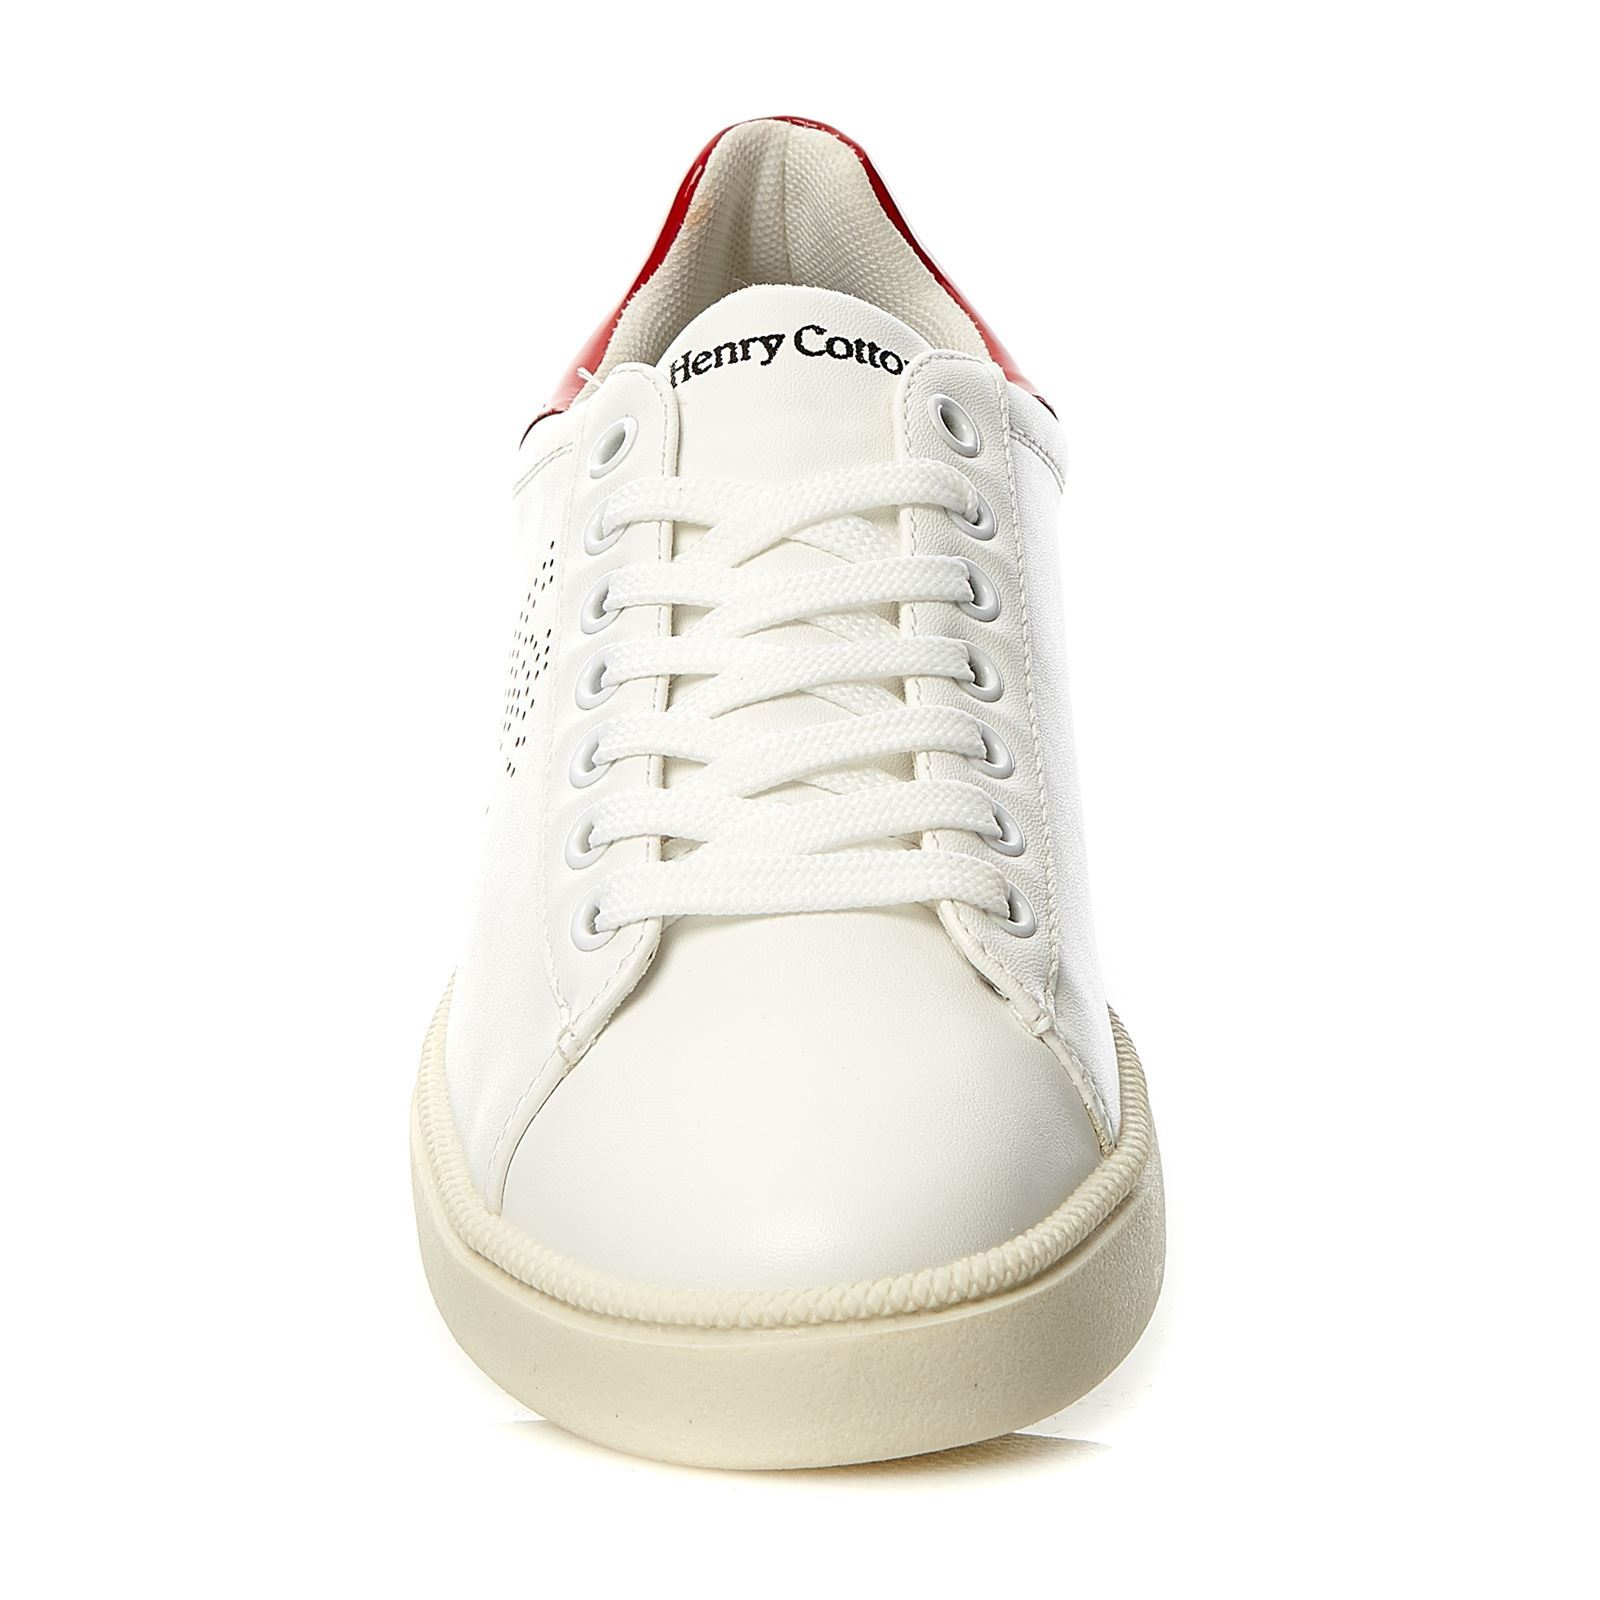 Chaussures - Bas-tops Et Baskets Henry Cotons zRxy1